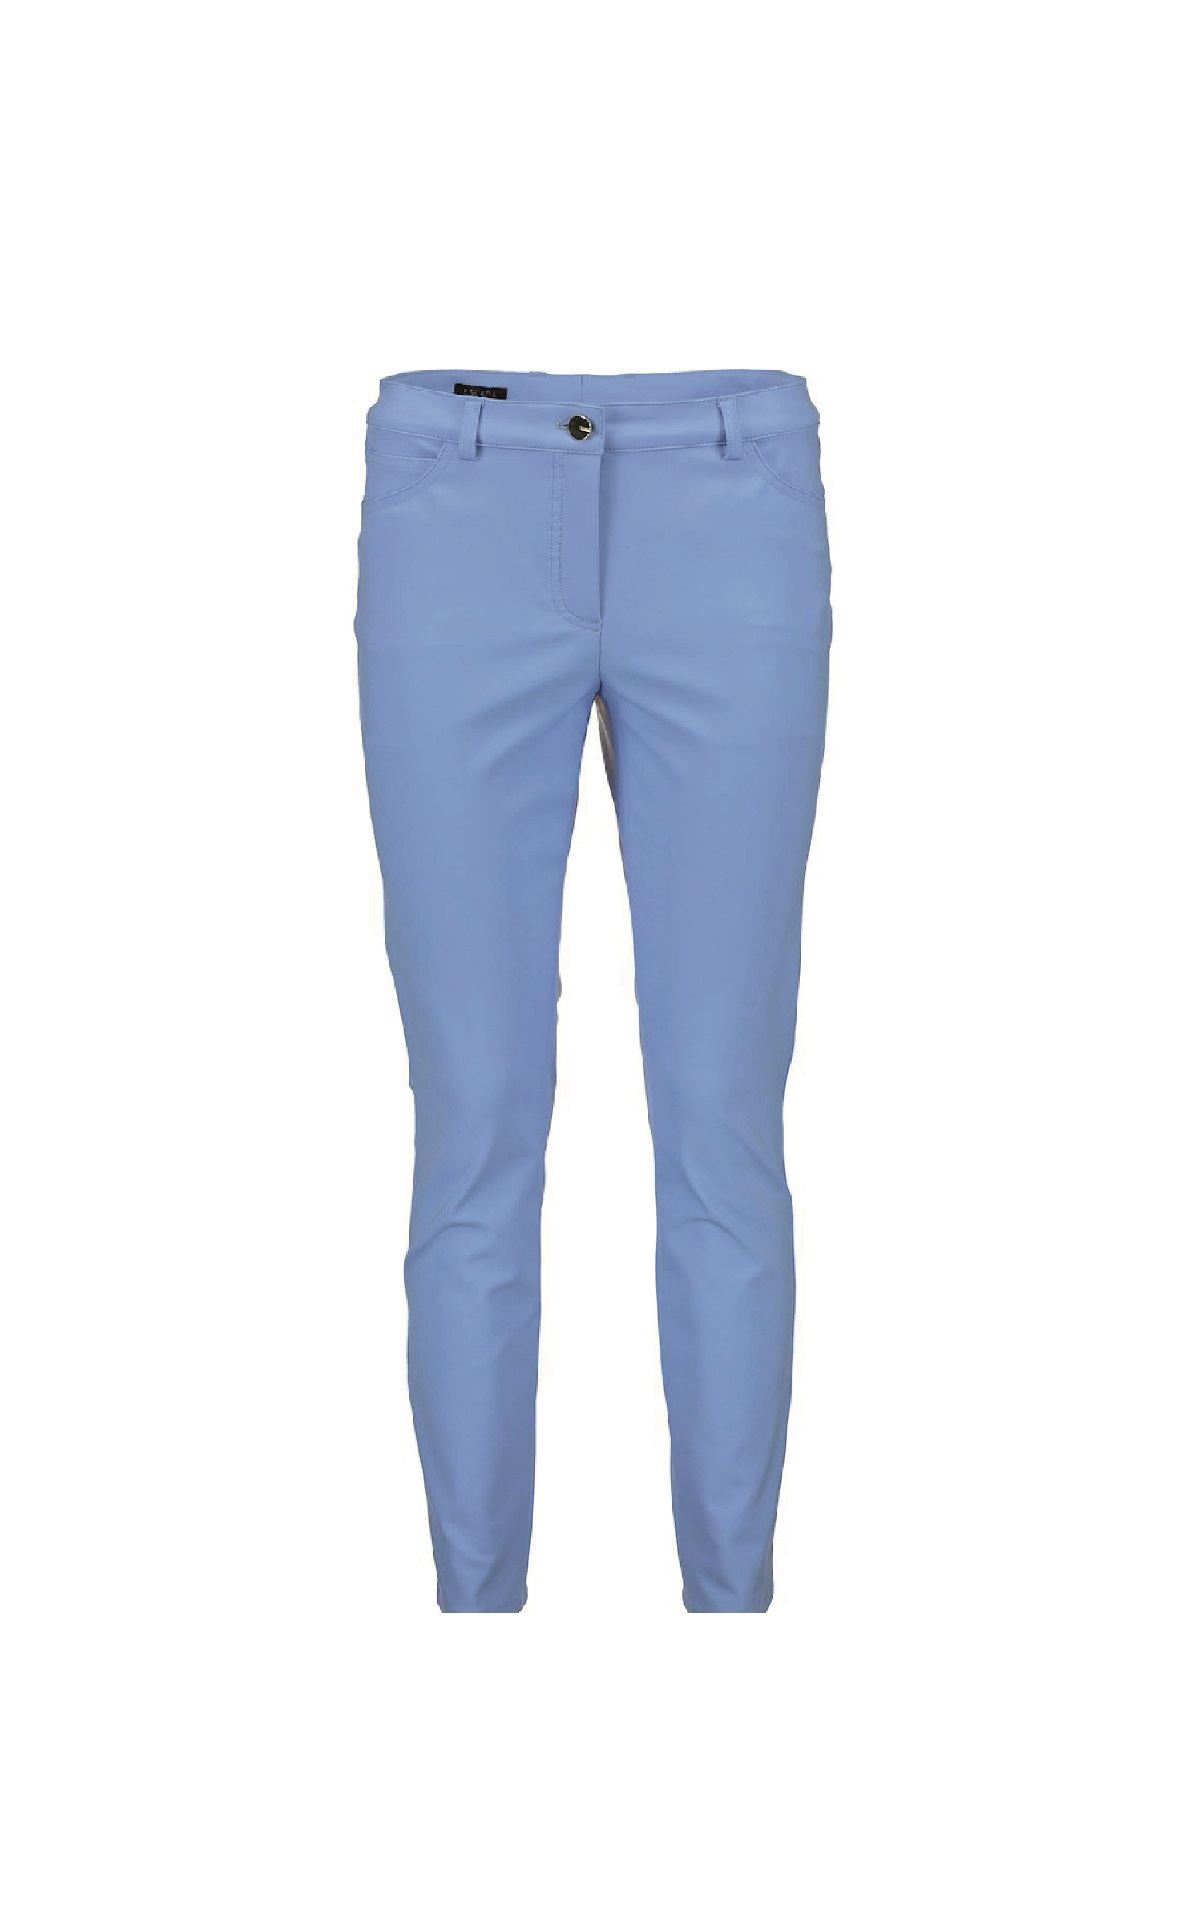 Blue denim jeans Escada